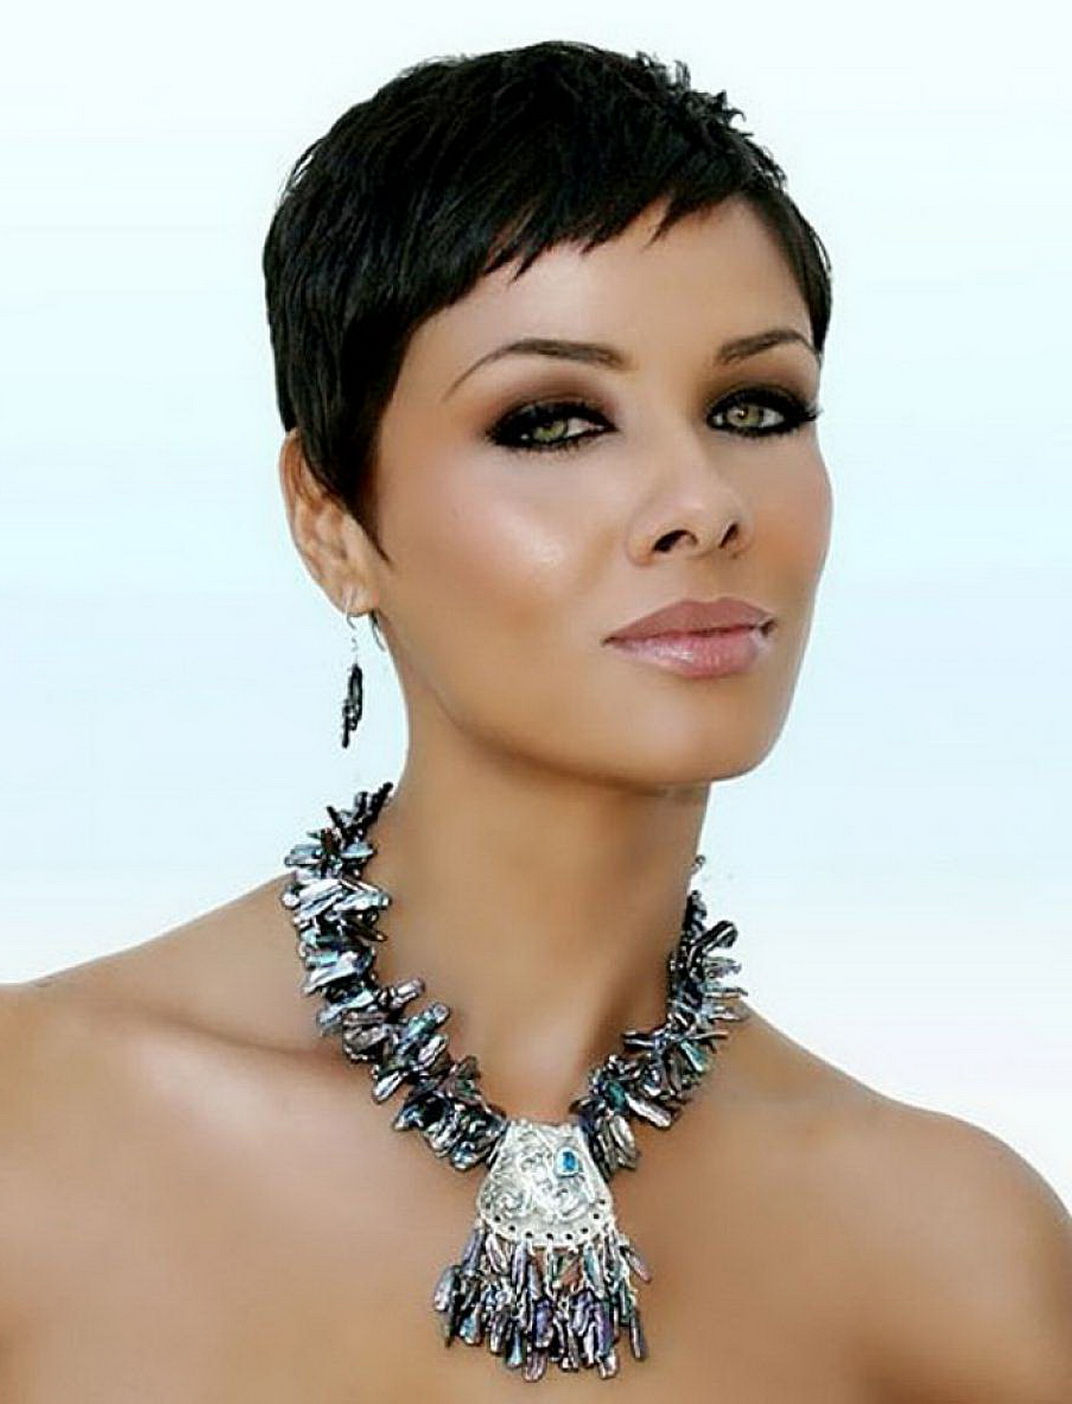 23 of the best looking short pixie haircuts | styles weekly